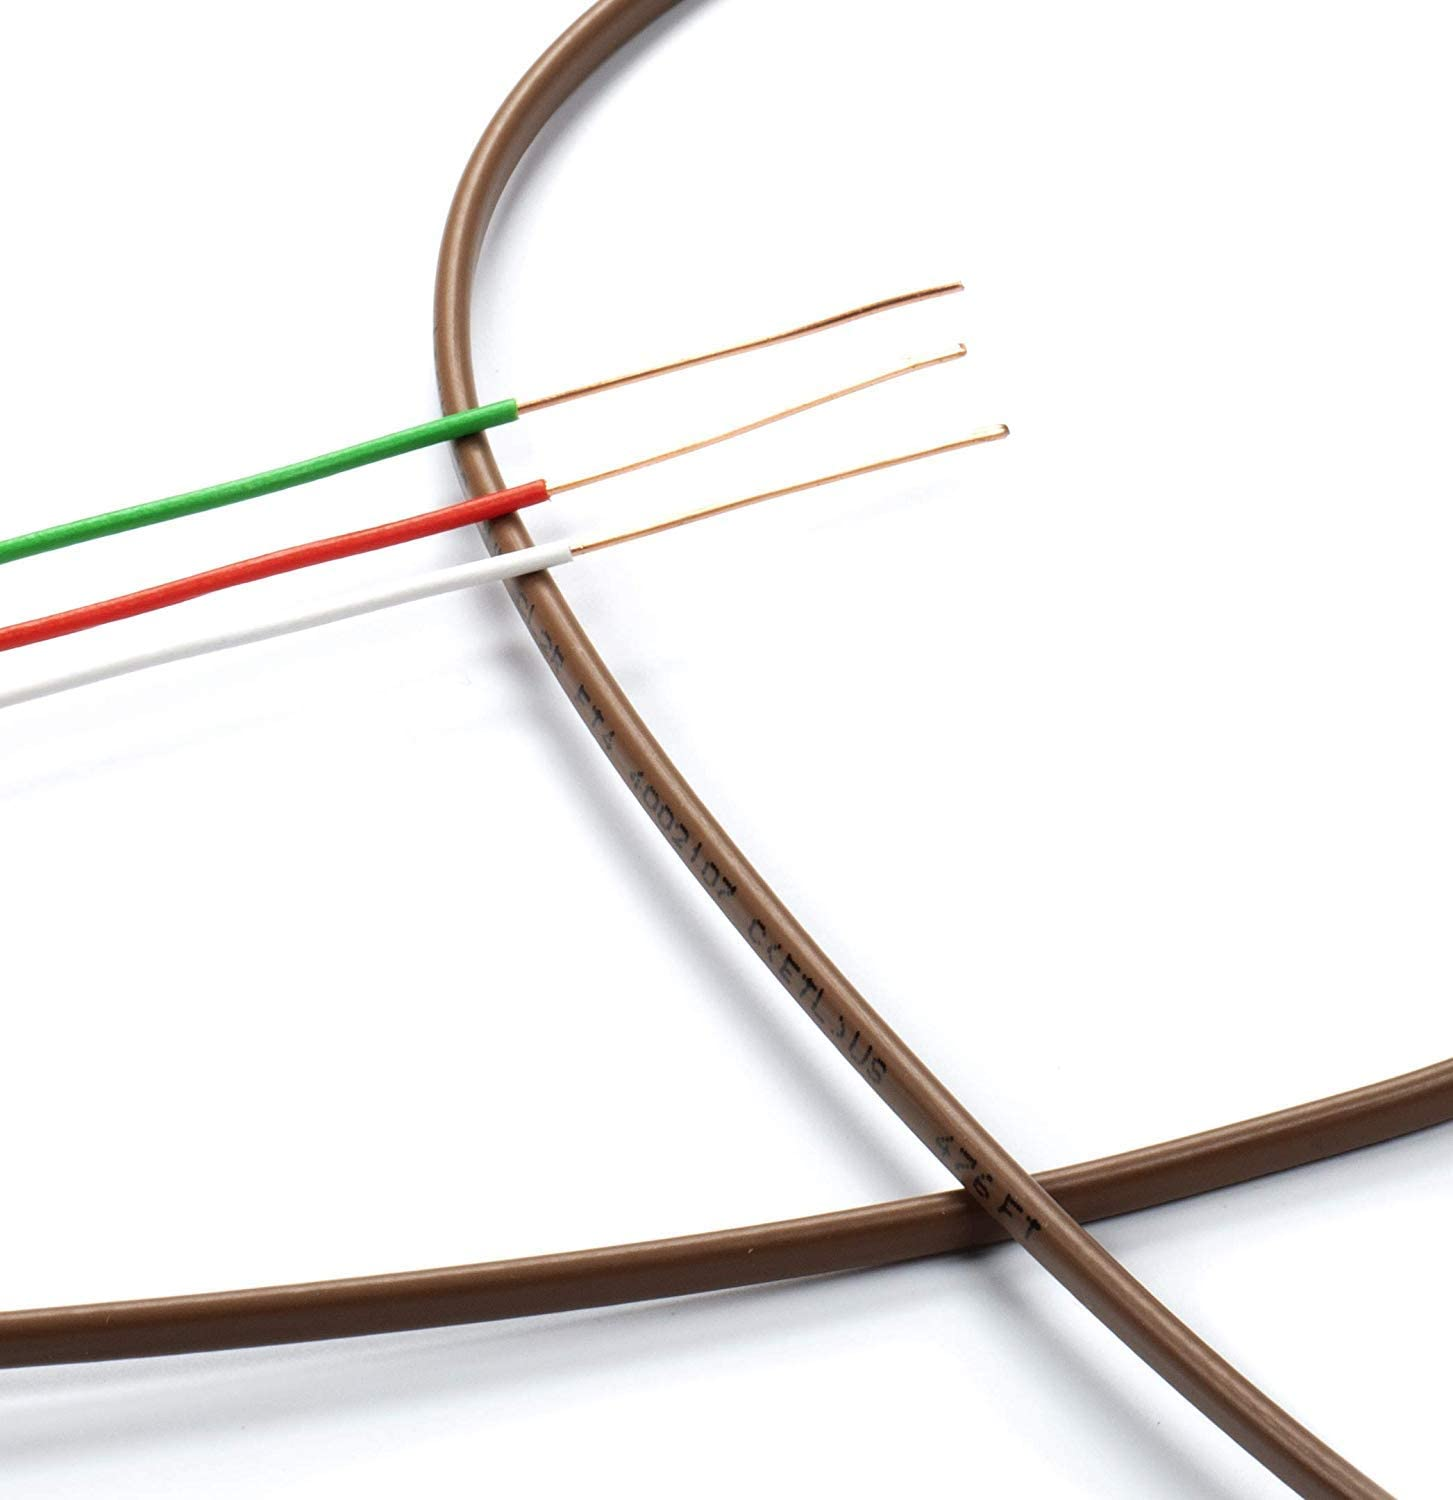 Thermostat Wire 18//8 Commercial and Industrial Rated 100 Feet CL2 Brown 18-8 CL3 CMR Riser Rated Solid Copper 18 Gauge 2 Conductor - Residential THE CIMPLE CO UL Listed